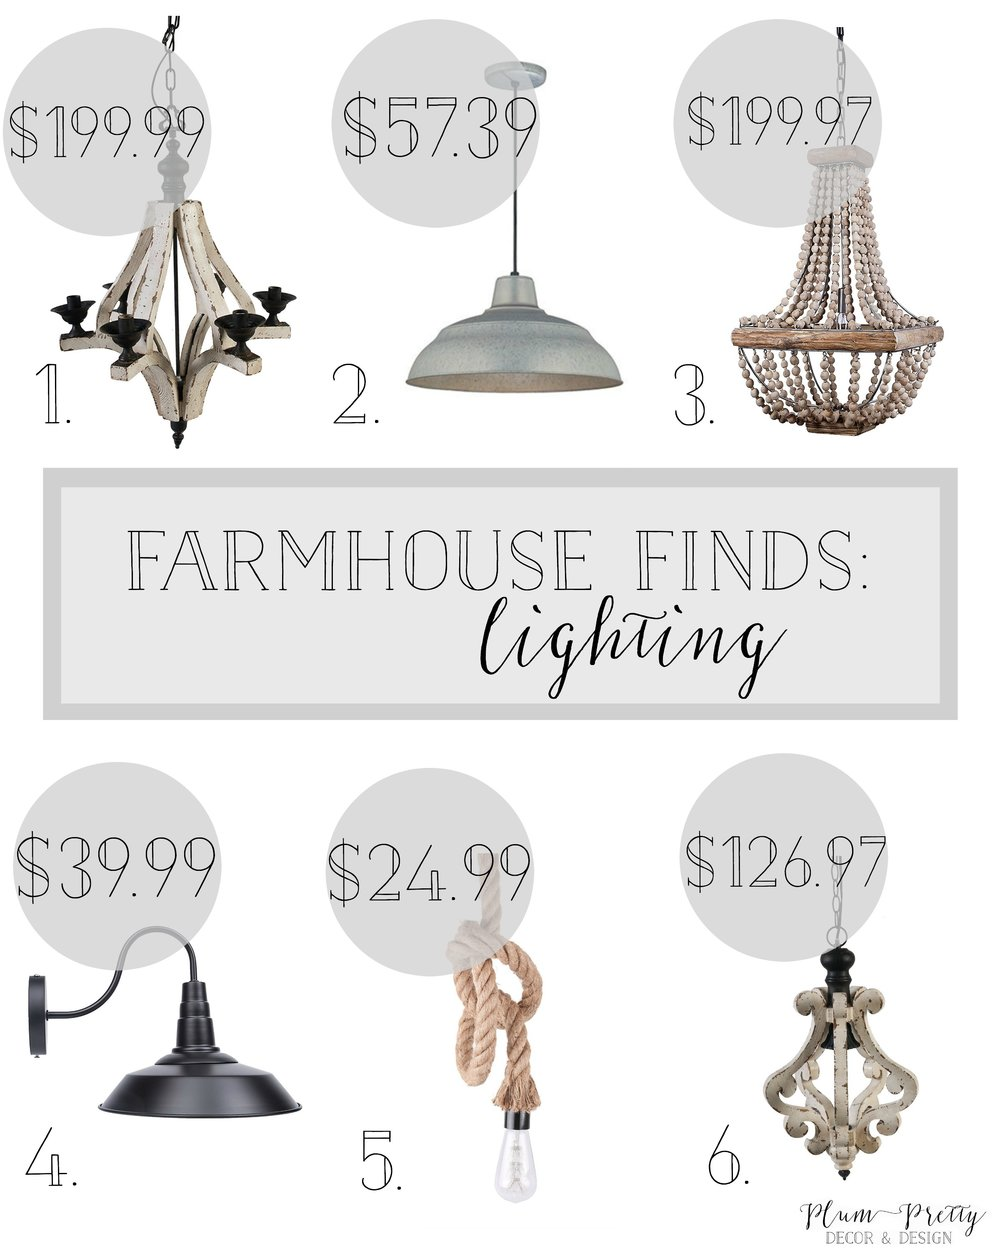 Farmhouse Style Lighting- Affordable Farmhouse Lighting- Hand picked by Plum Pretty Decor and Design